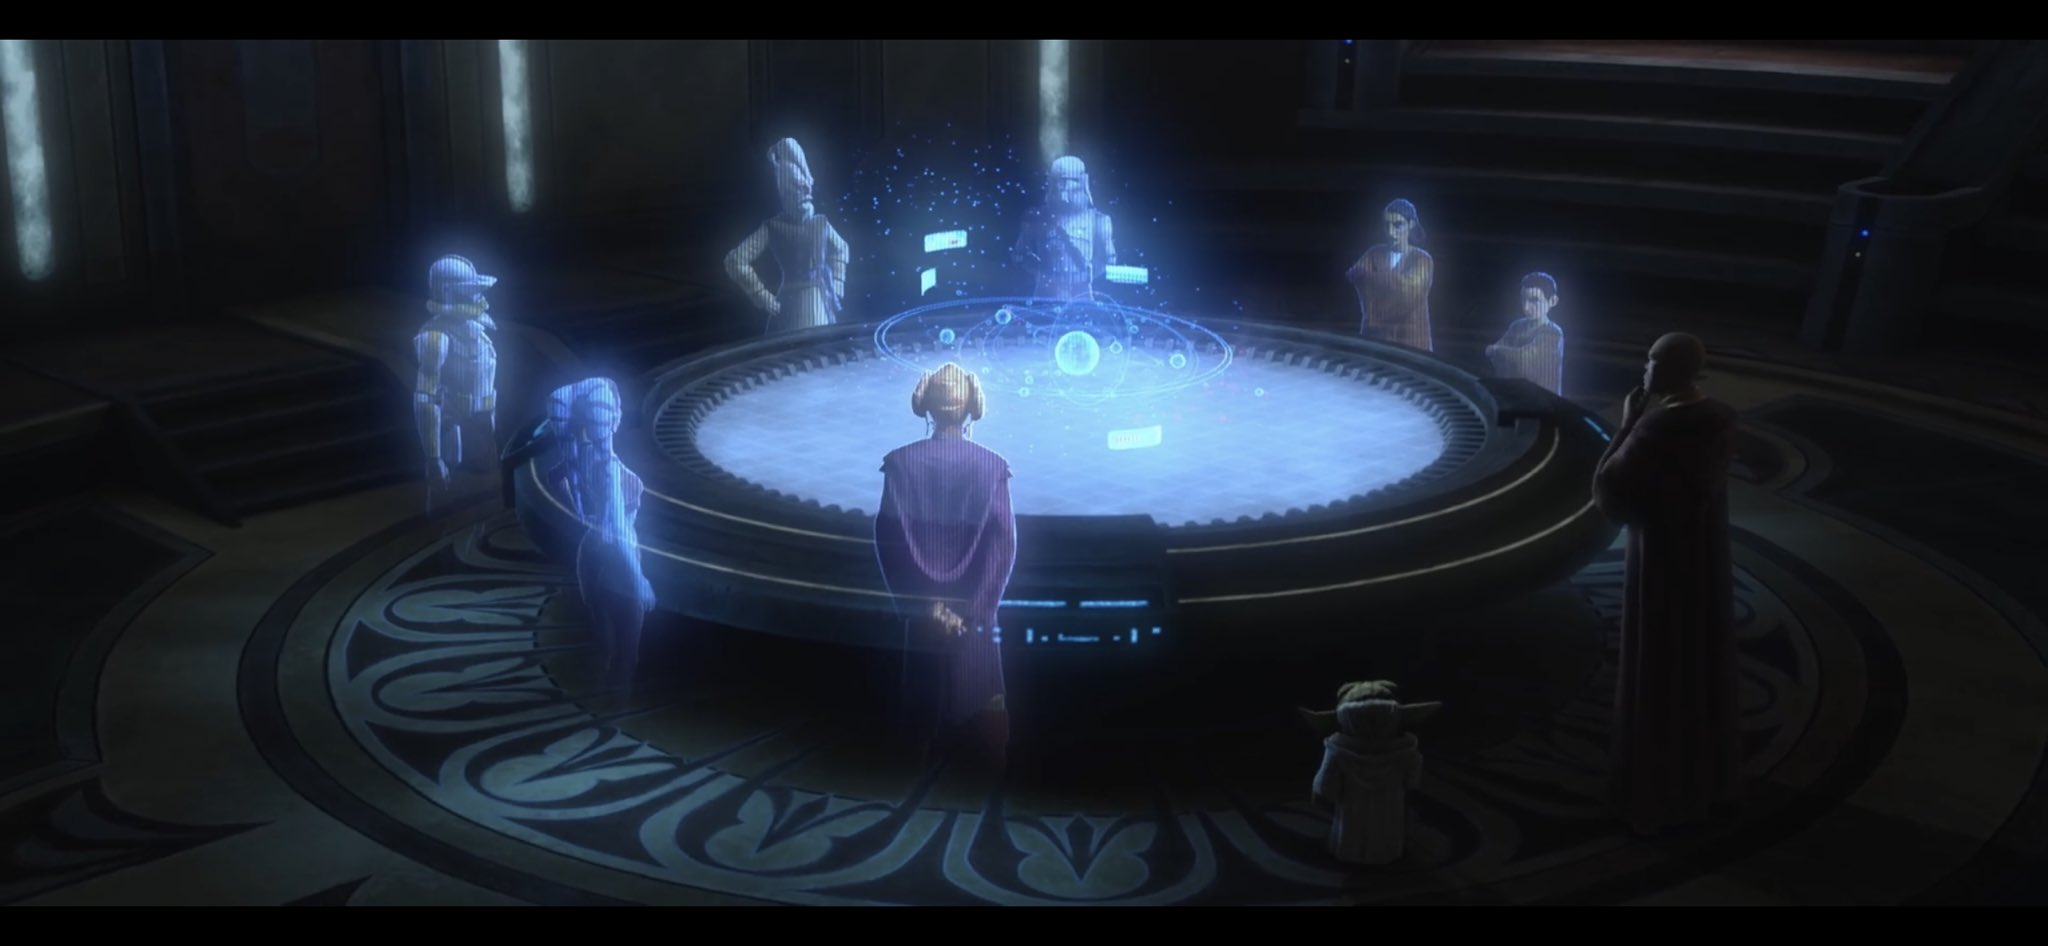 The Jedi Council planning their next move